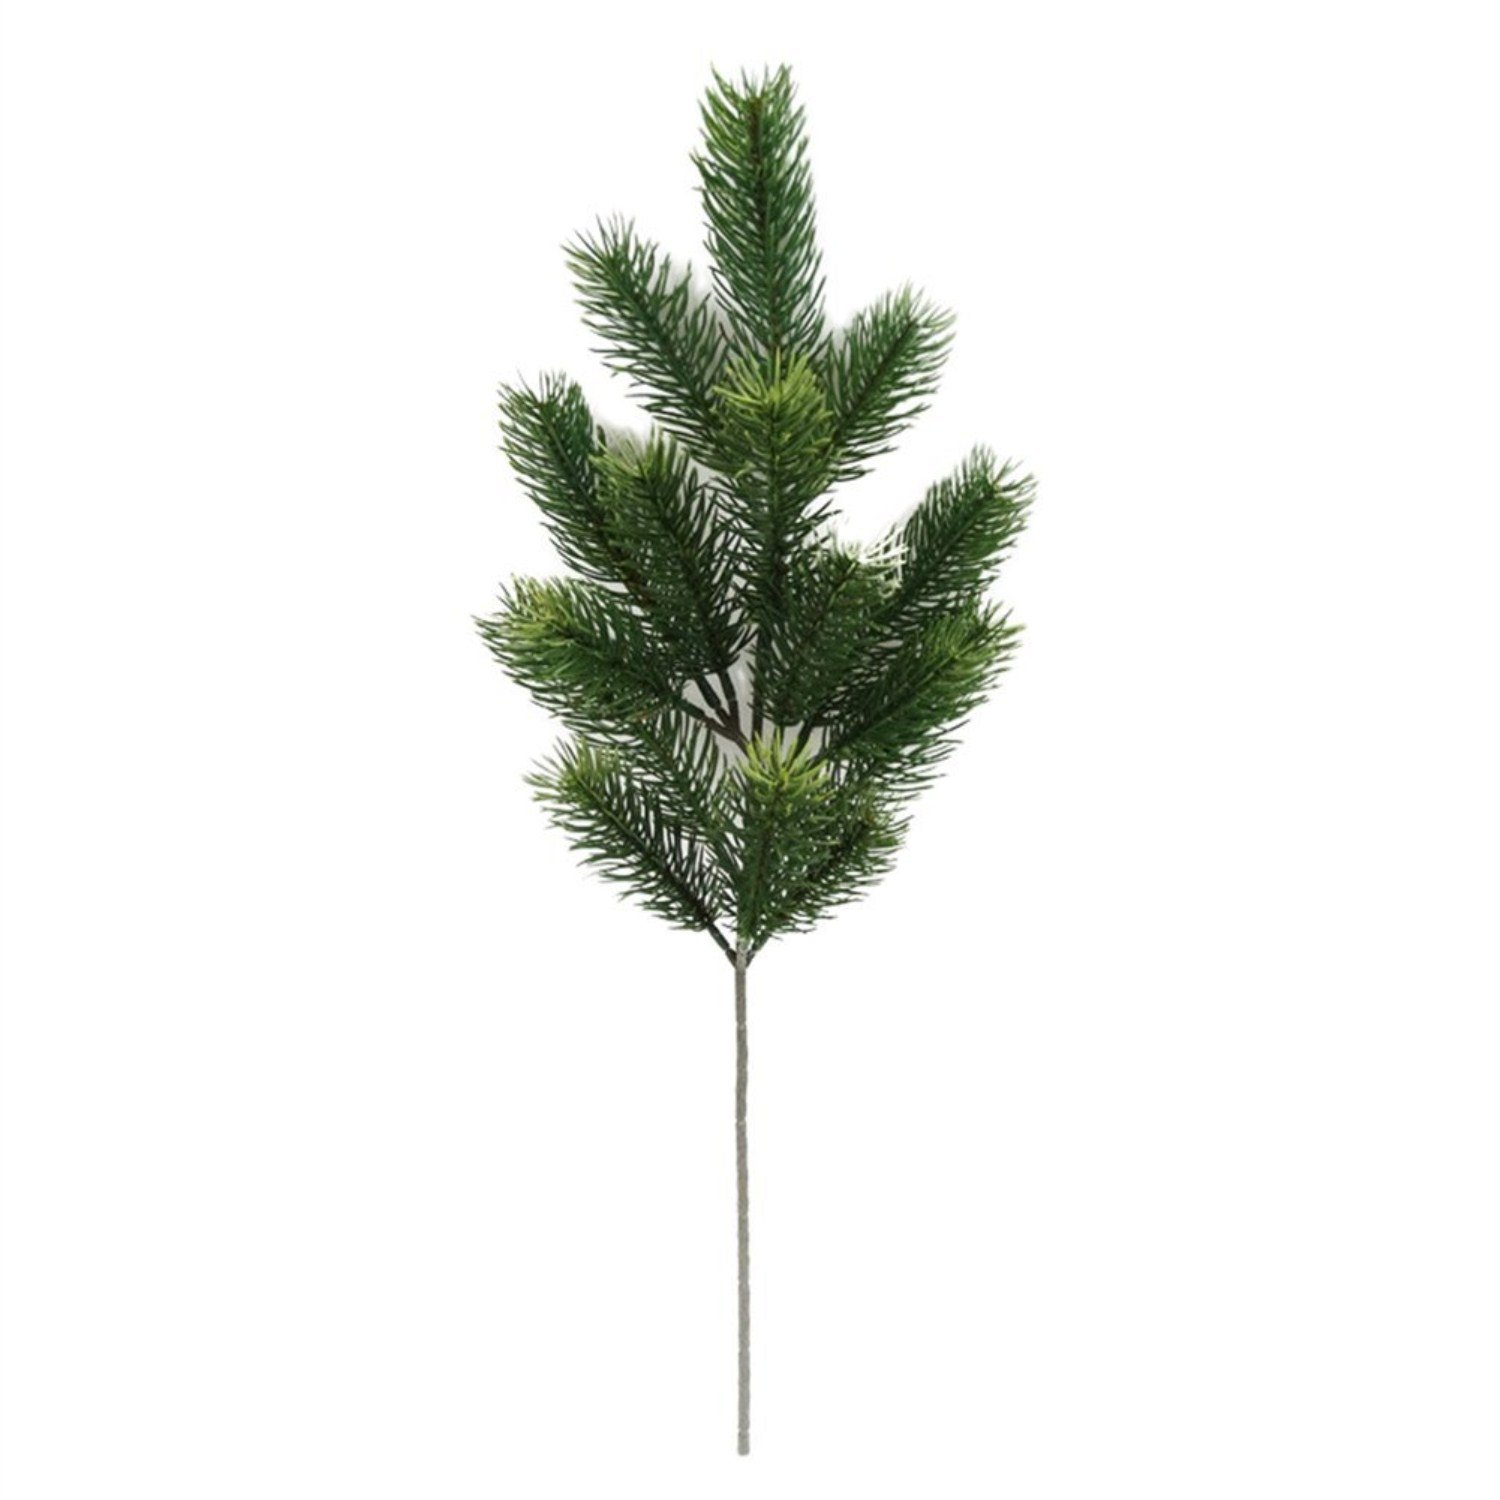 Artificial Christmas Trees Amazon Uk: Vikenner Artificial Pine Tree Branches Real Feel Hinged